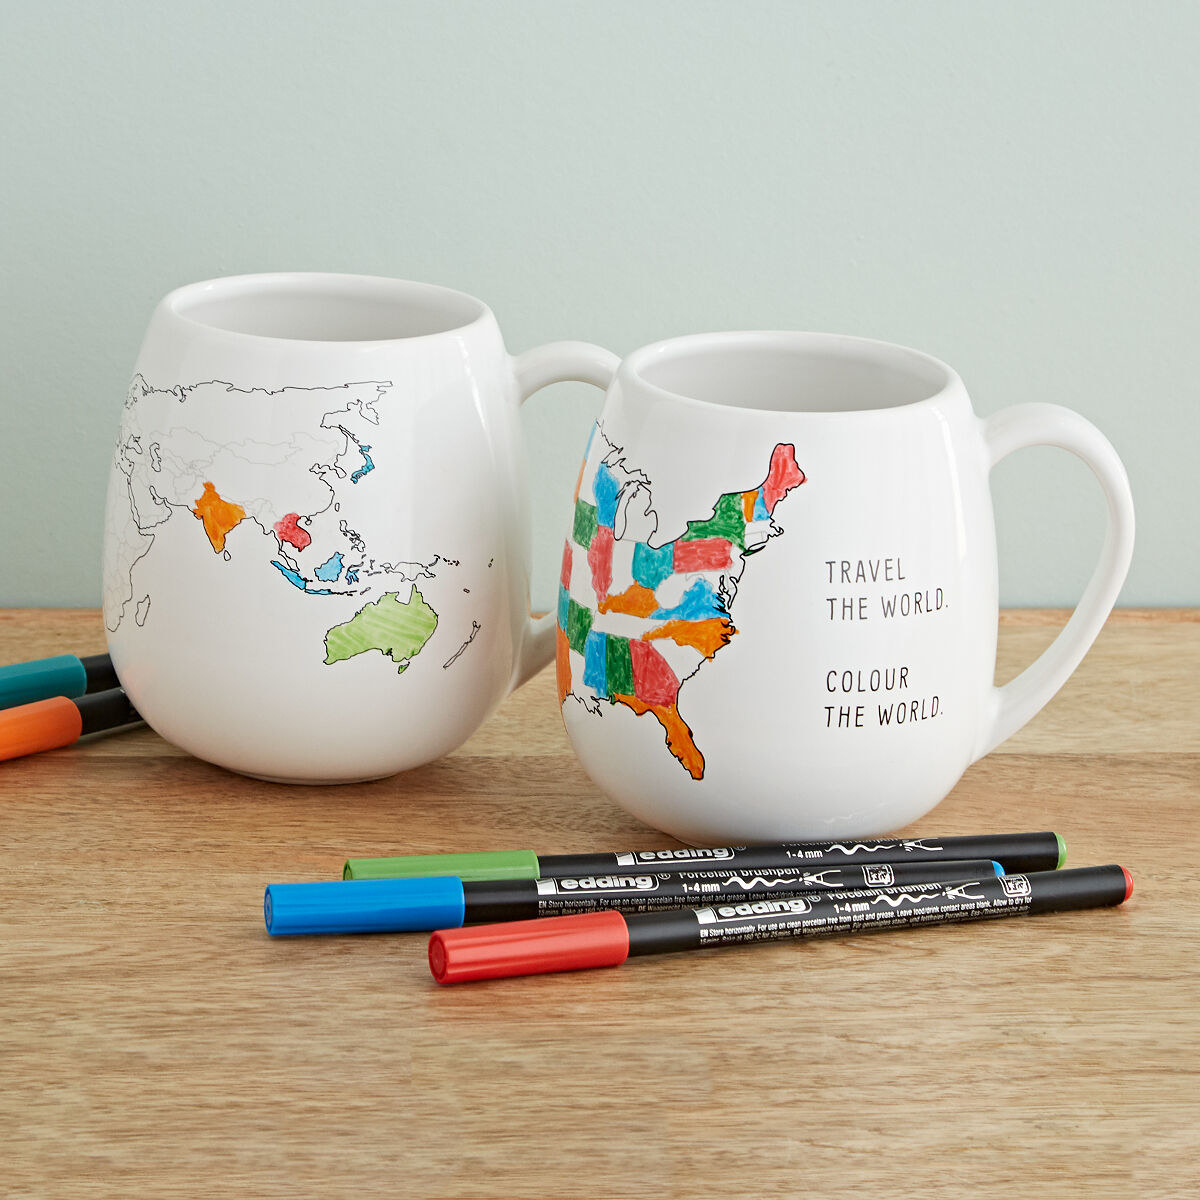 Three colored markers and two mugs with maps of the U.S and the world, partially colored in.